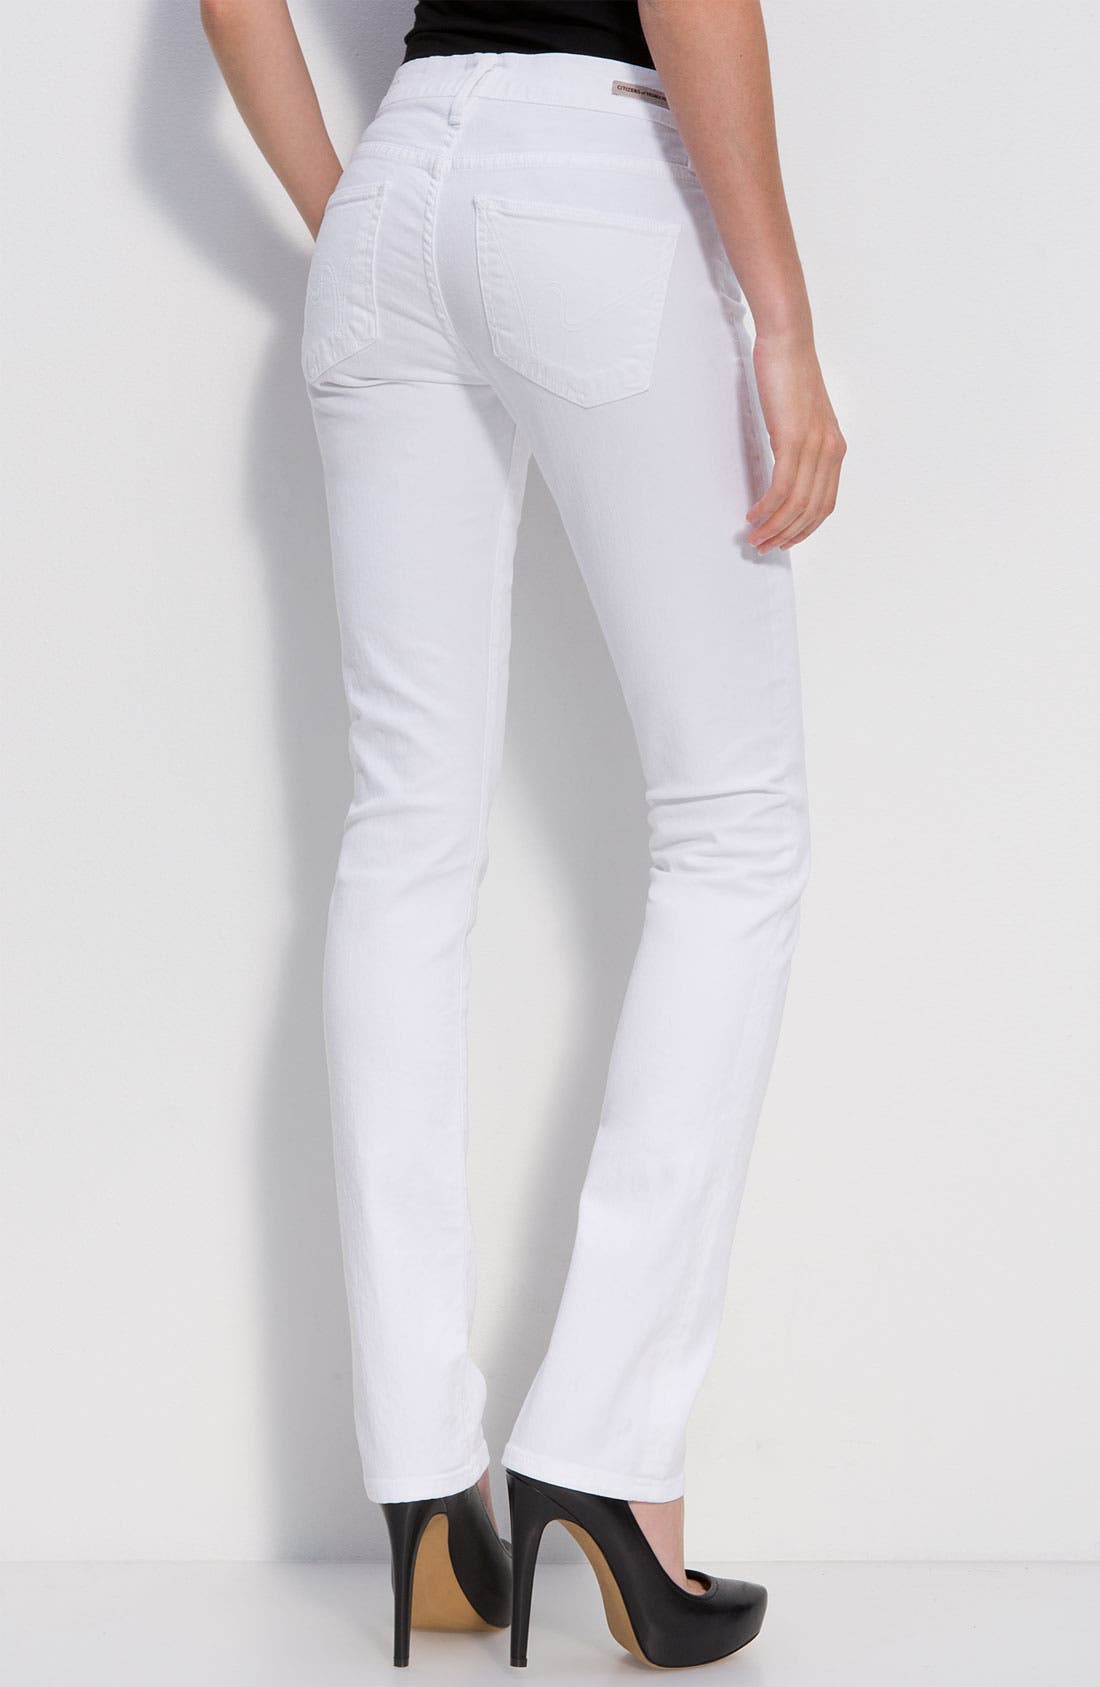 Main Image - Citizens of Humanity 'Elson' Straight Leg Jeans (Santorini Wash)